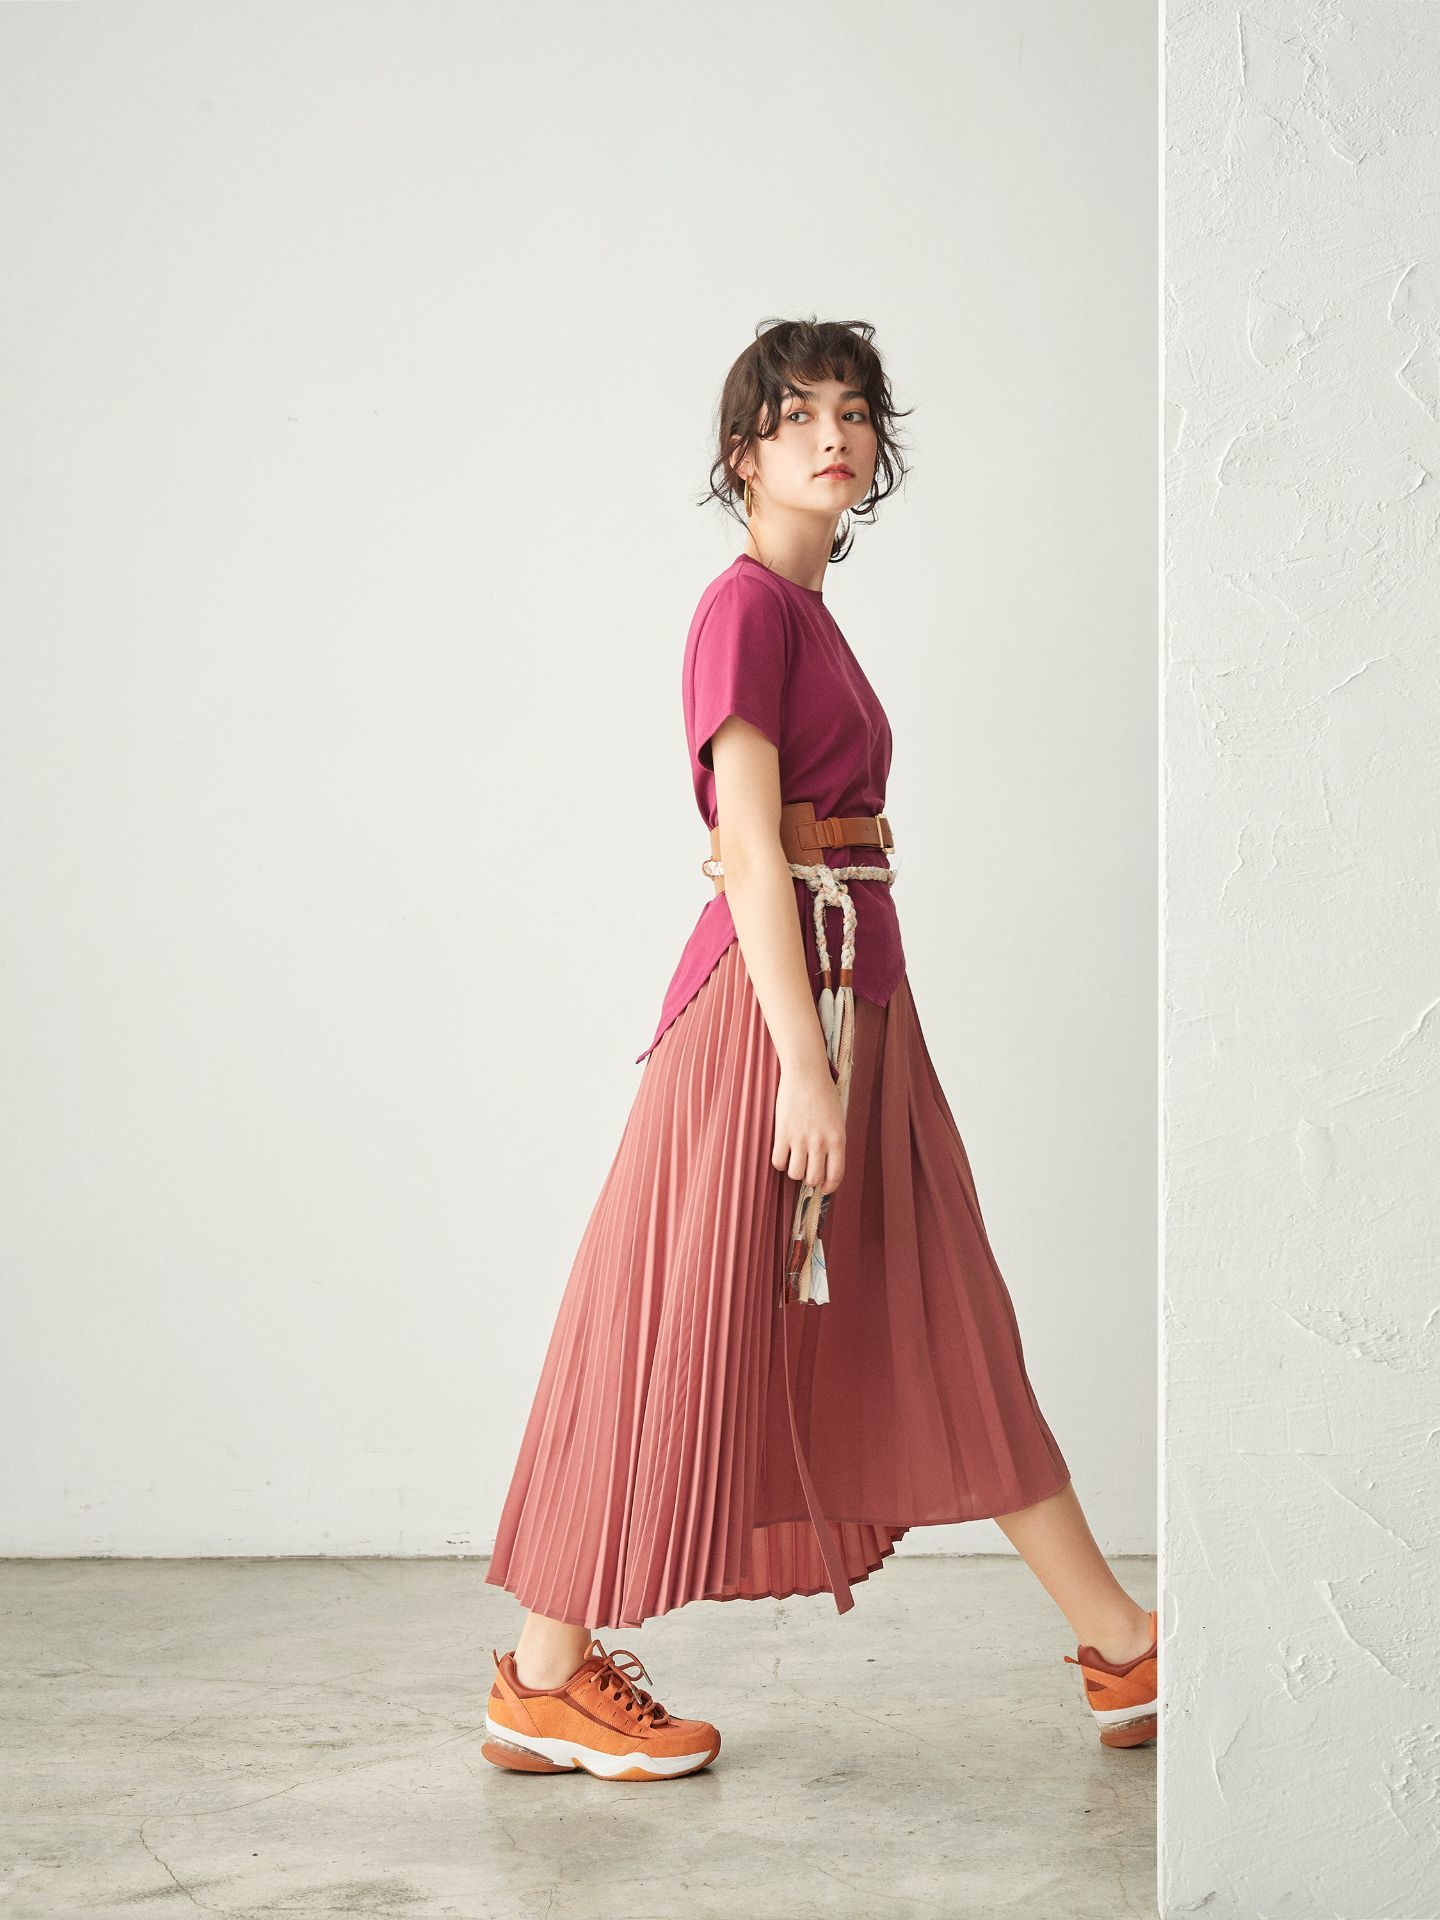 woman 2019 summer lookbook 2 25393